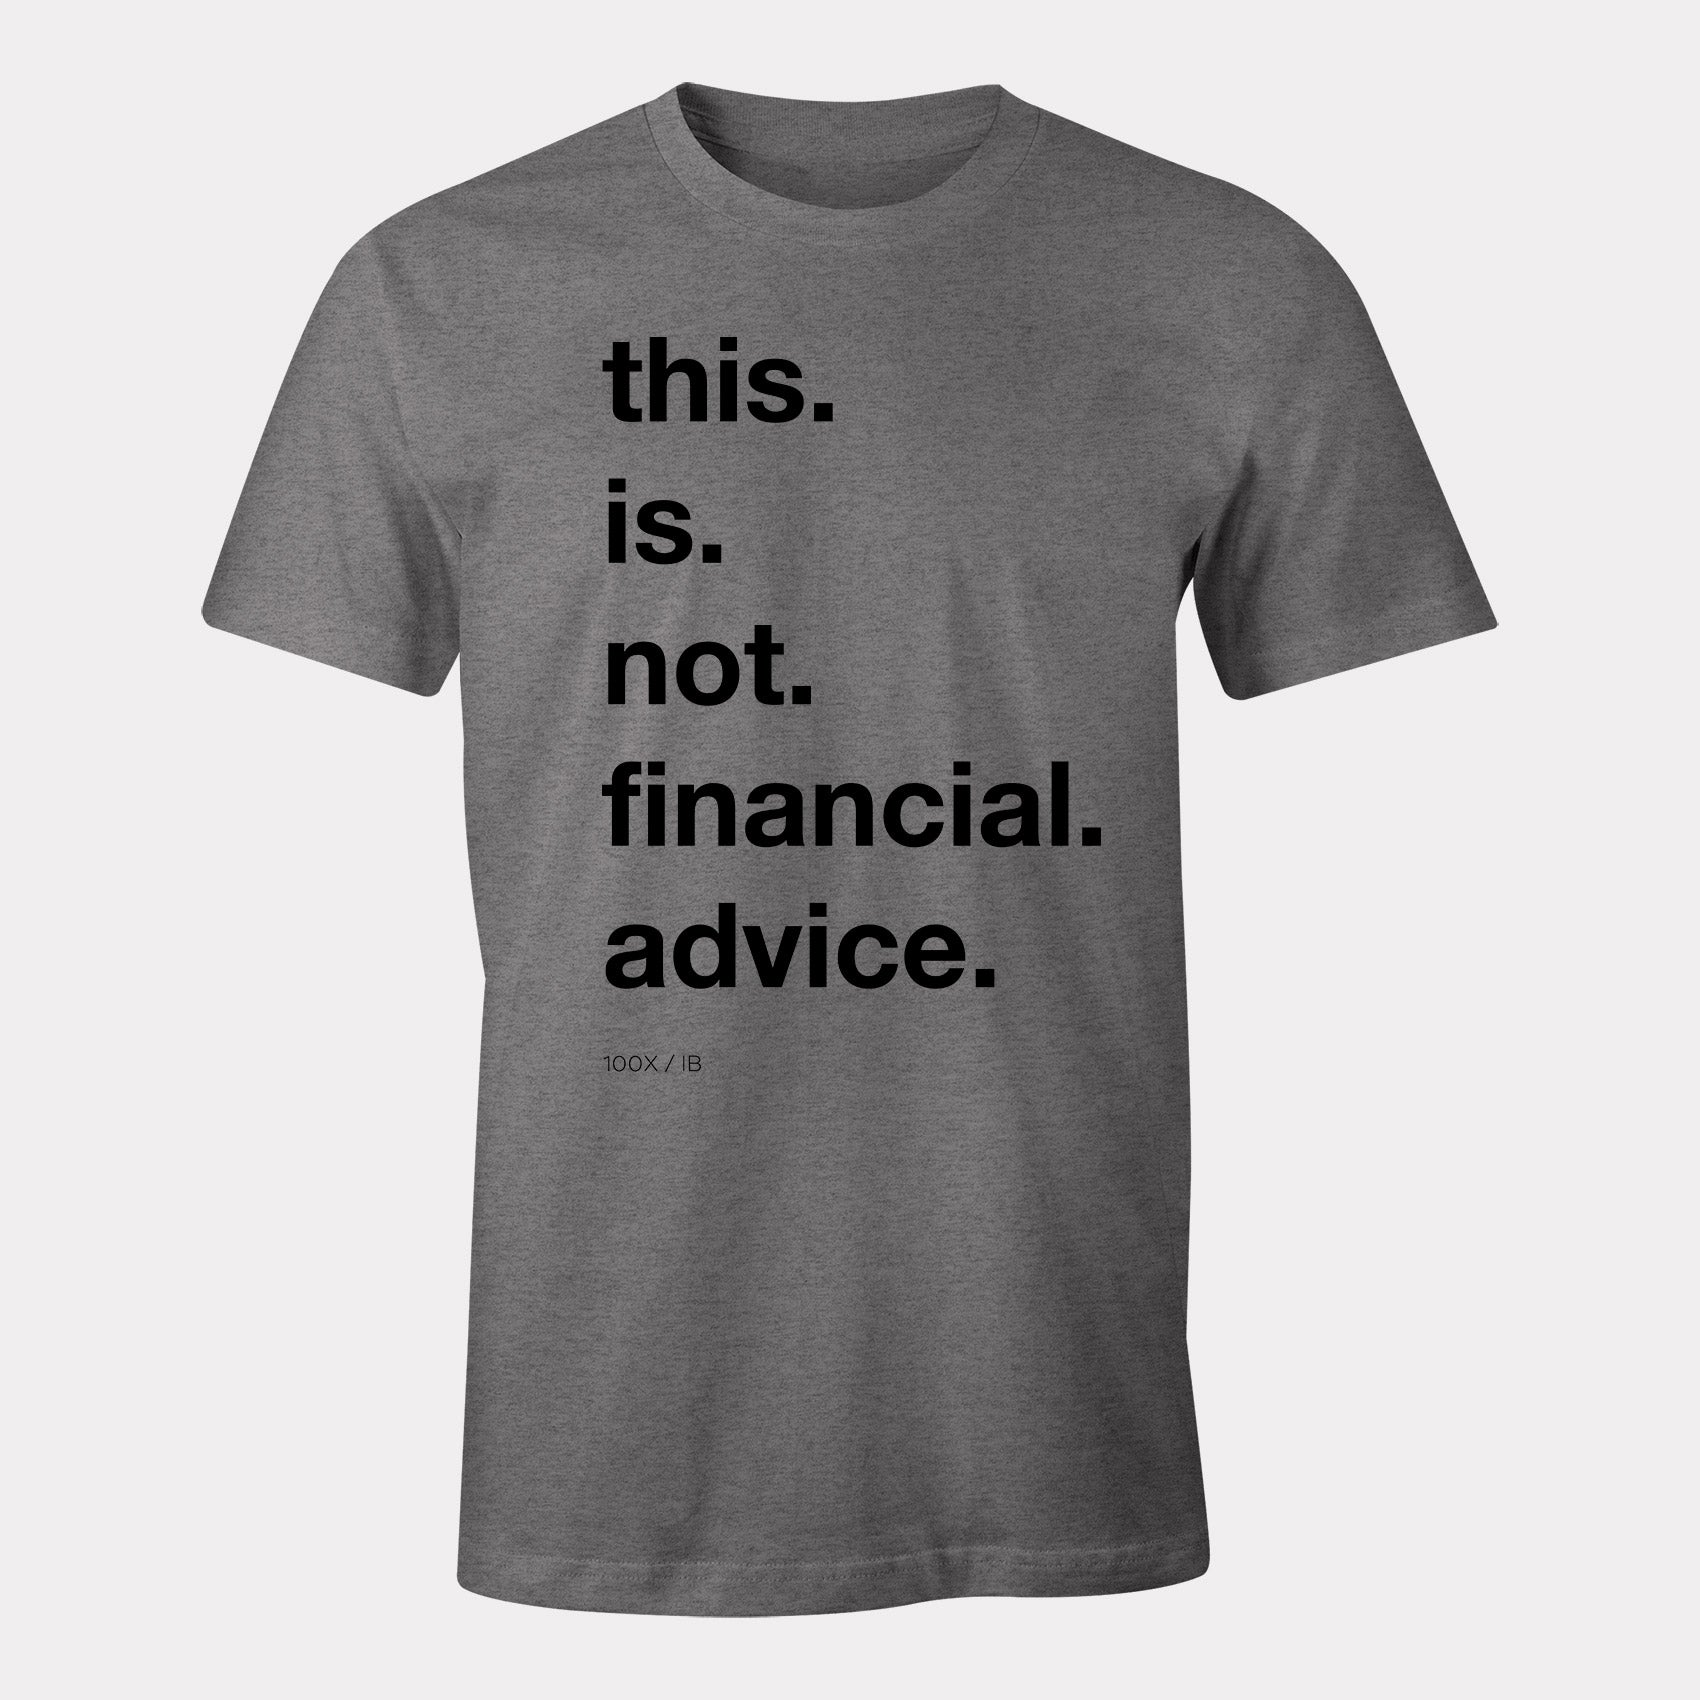 not financial advice shirt